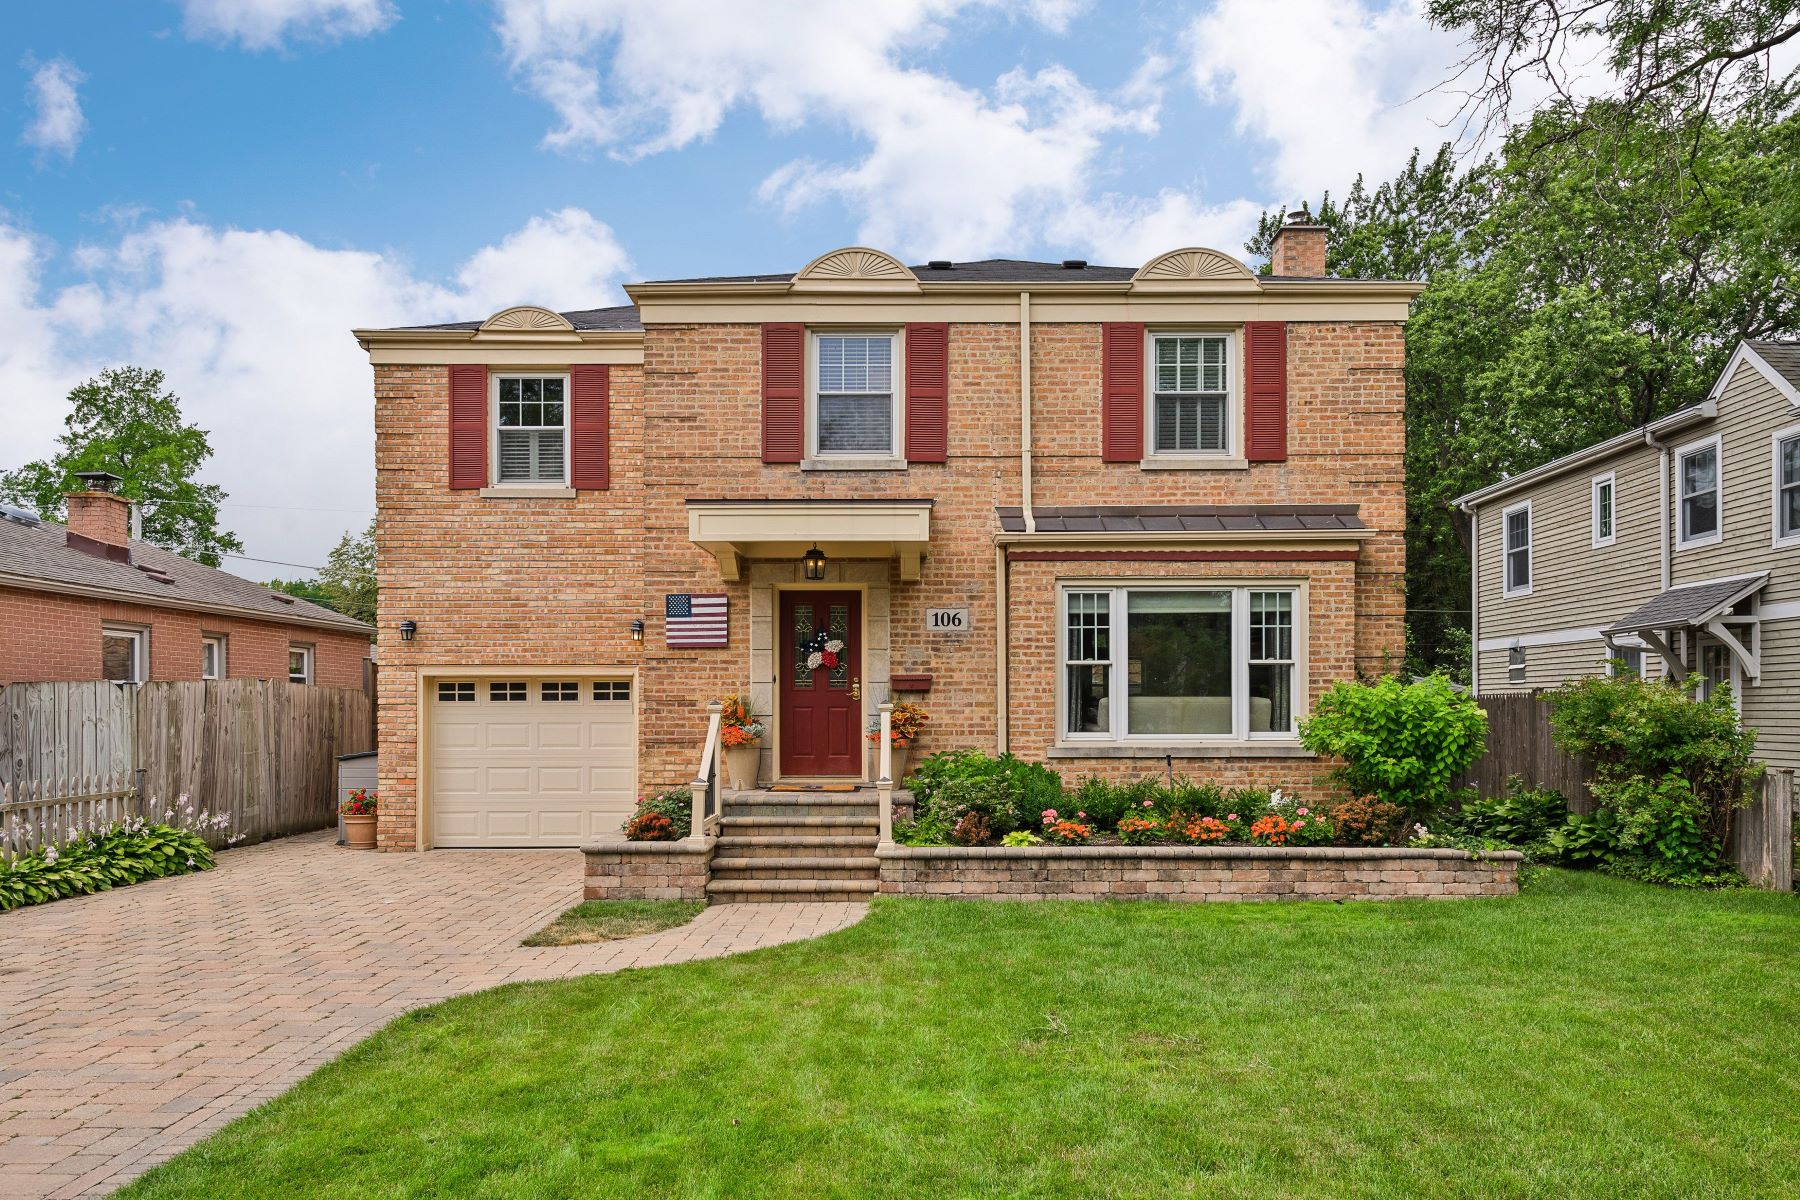 Single Family Homes para Venda às Classic, Expanded Georgian, 5 bedroom home is coveted Park Manor - Glenview 106 Lincoln Street, Glenview, Illinois 60025 Estados Unidos